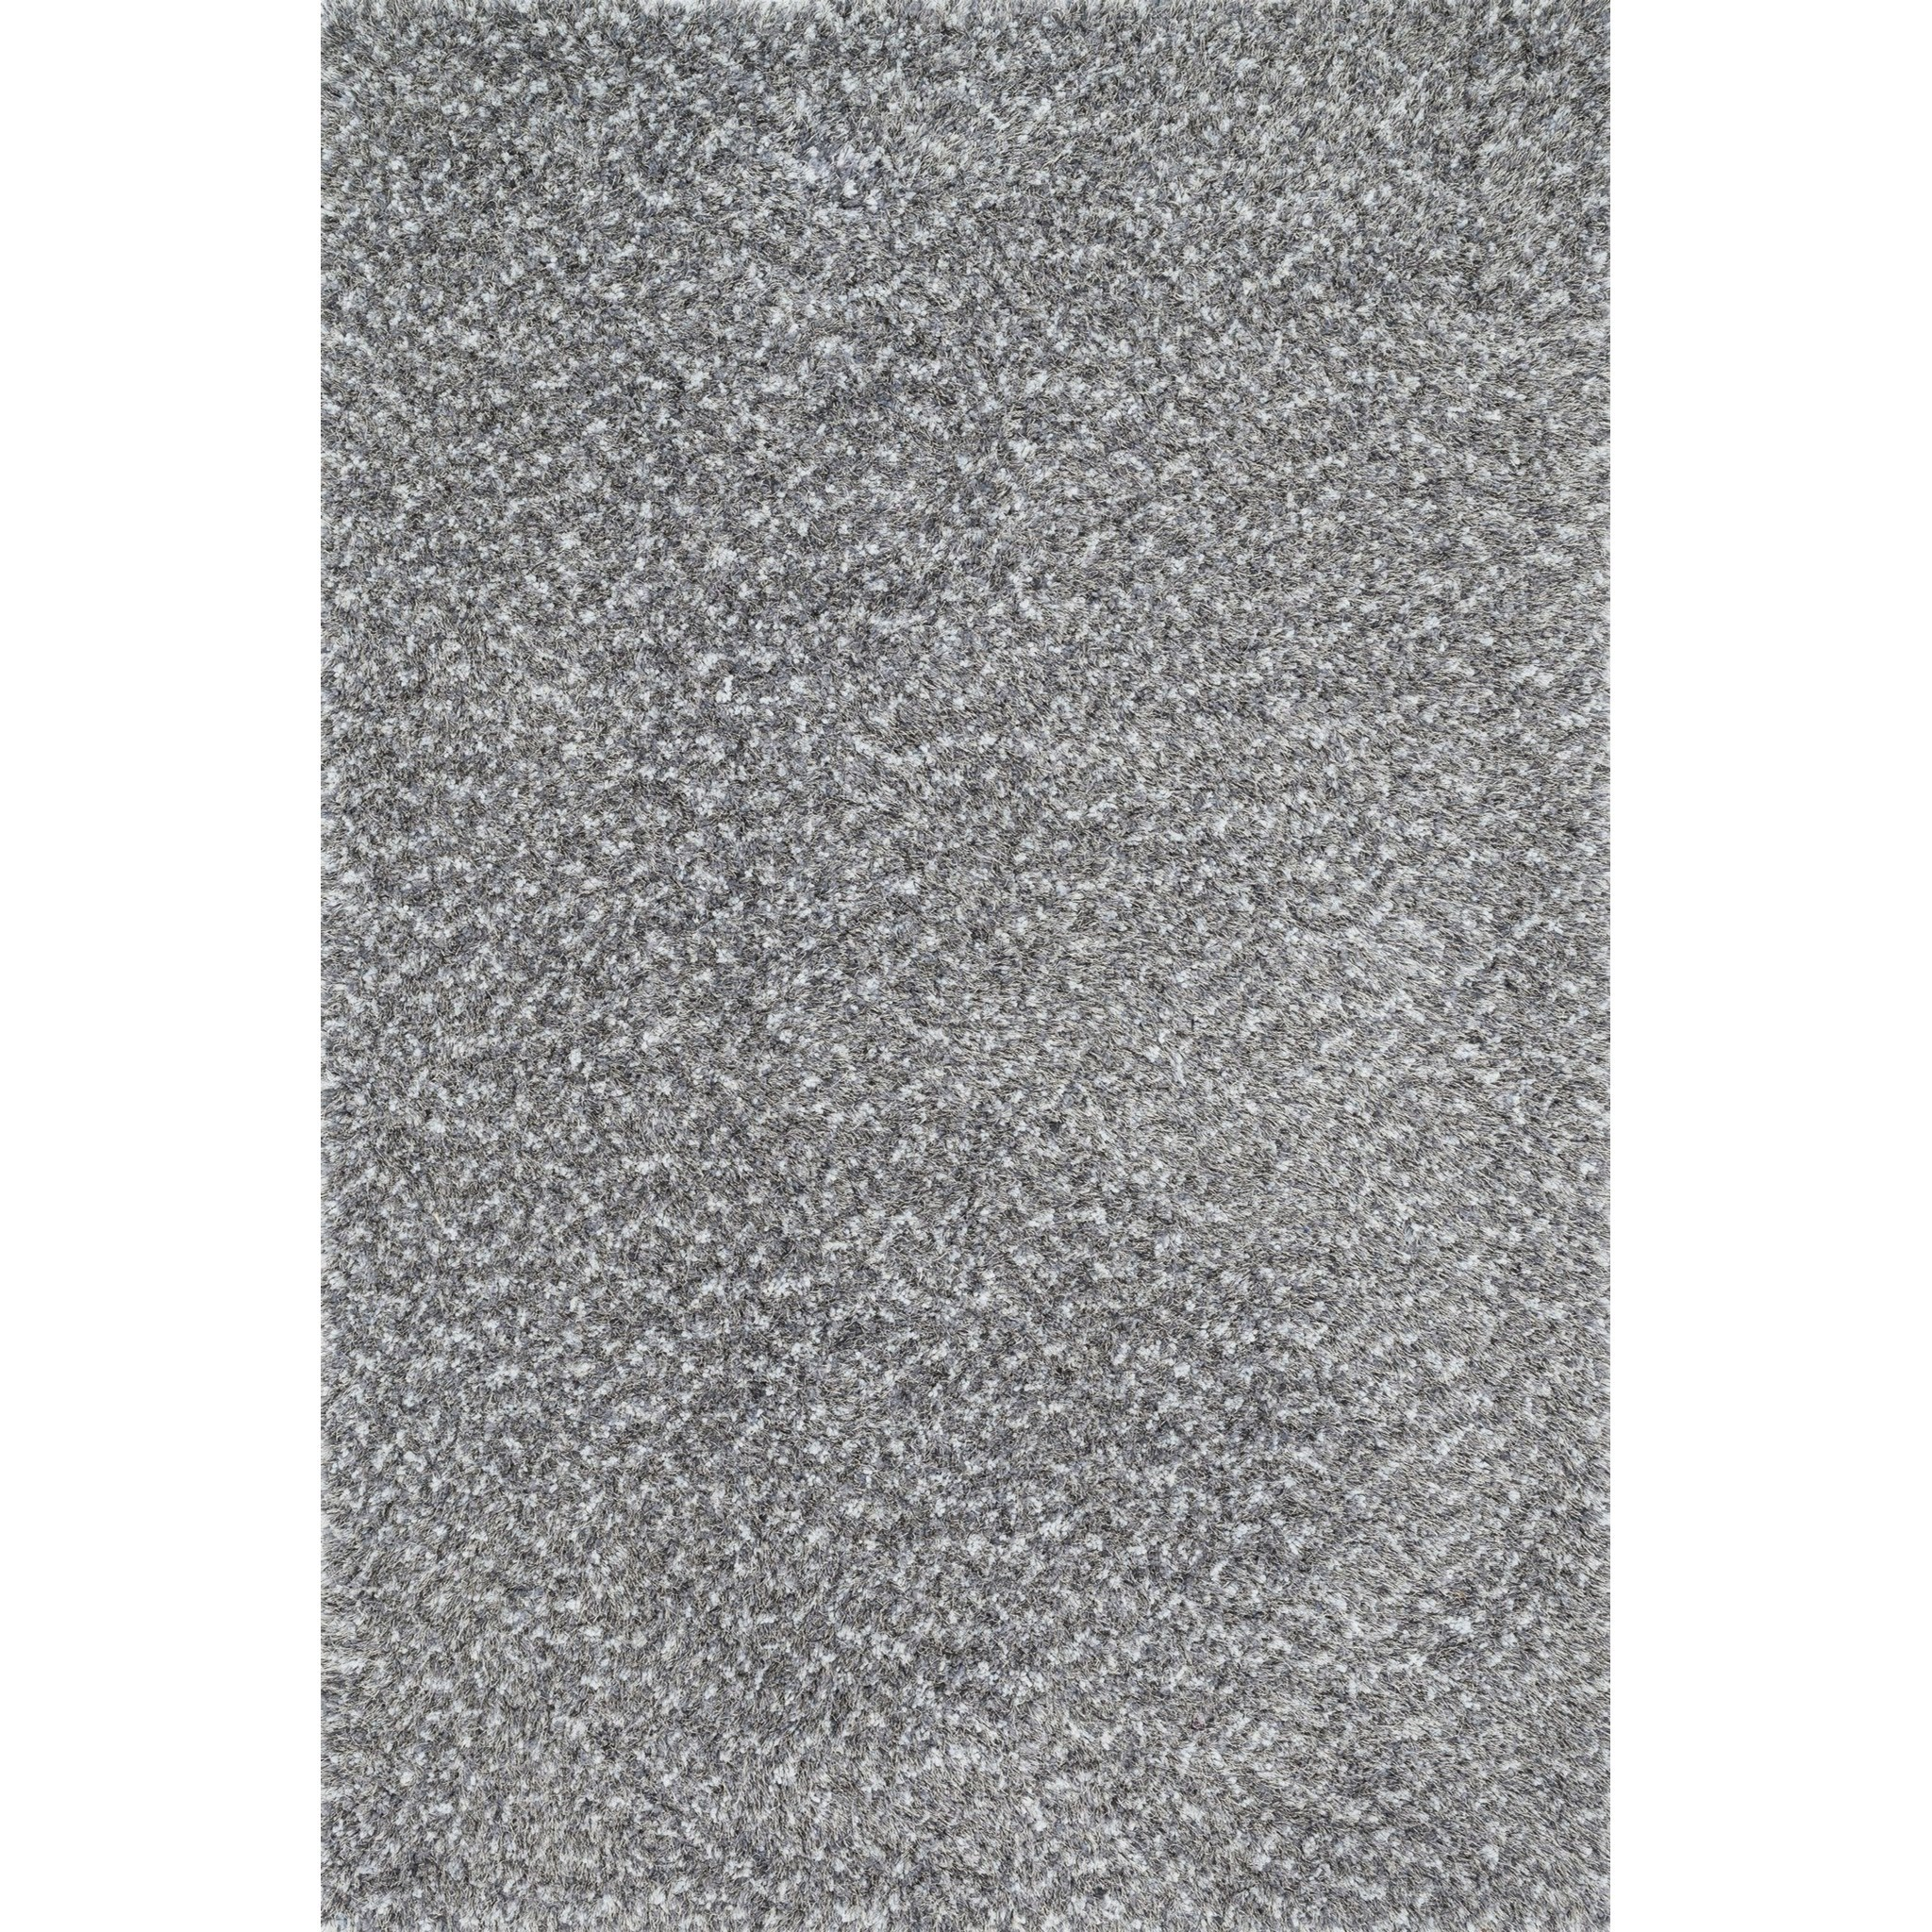 "Callie Shag 3'-6"" x 5'-6"" Area Rug by Loloi Rugs at Belfort Furniture"